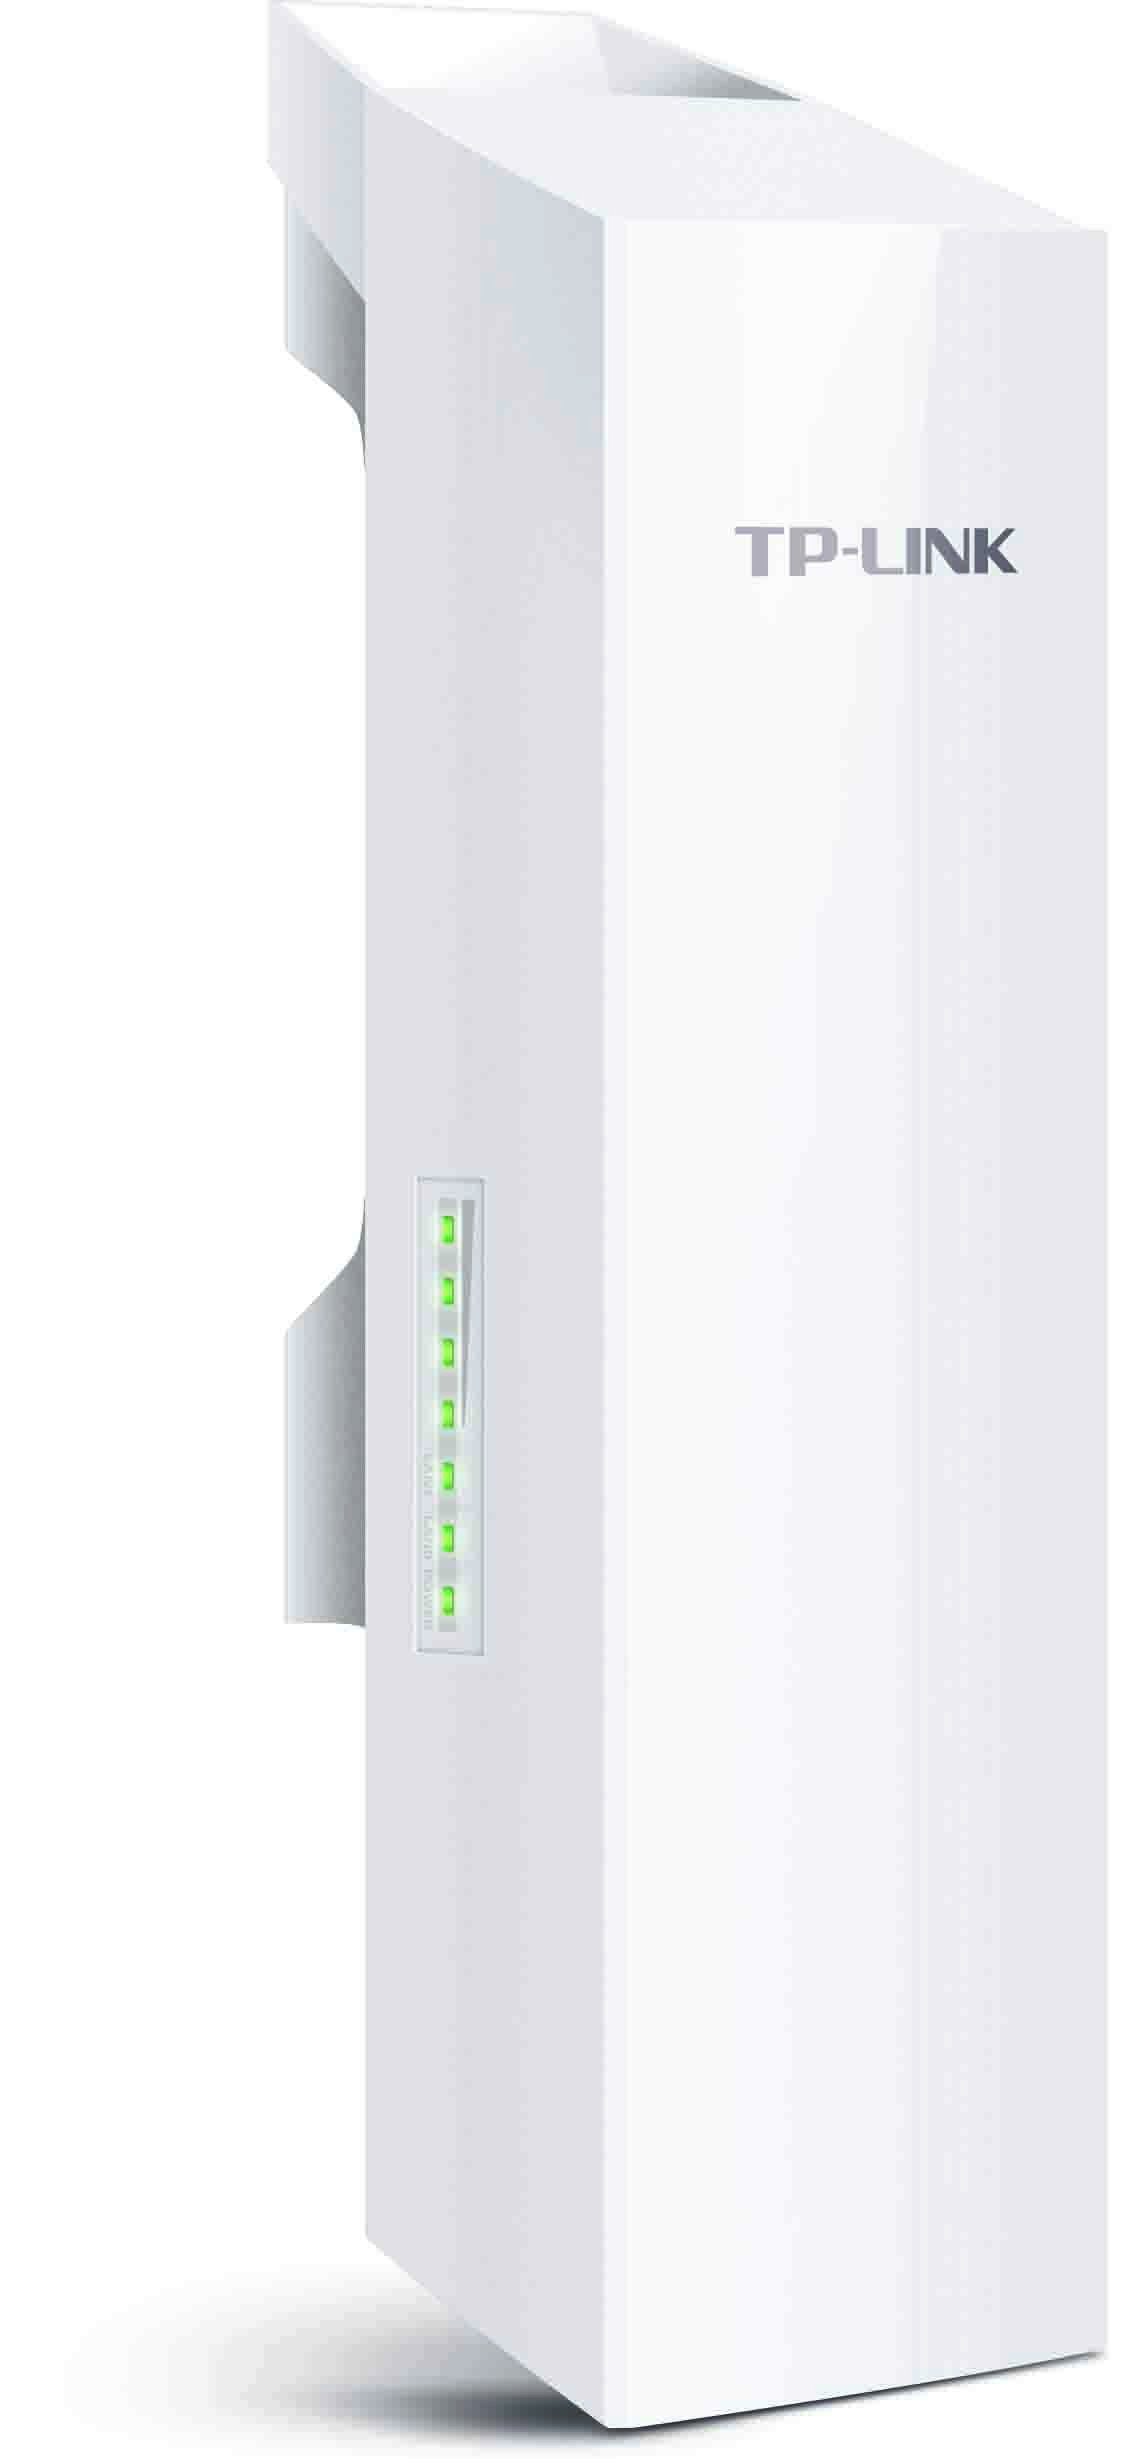 TP-LINK CPE210 2.4GHz 300Mbps 9dBi High Power Outdoor CPE/Access Point, 2.4GHz 300Mbps, 802.11b/g/n, dual-polarized 9dBi directional antenna, Passive POE by TP-LINK